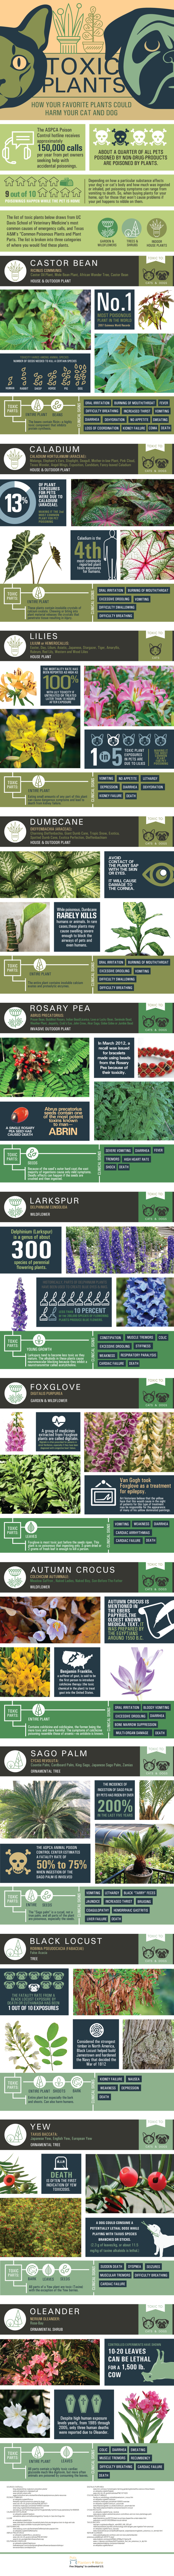 Great infographic about the most common toxic plants to cats and dogs